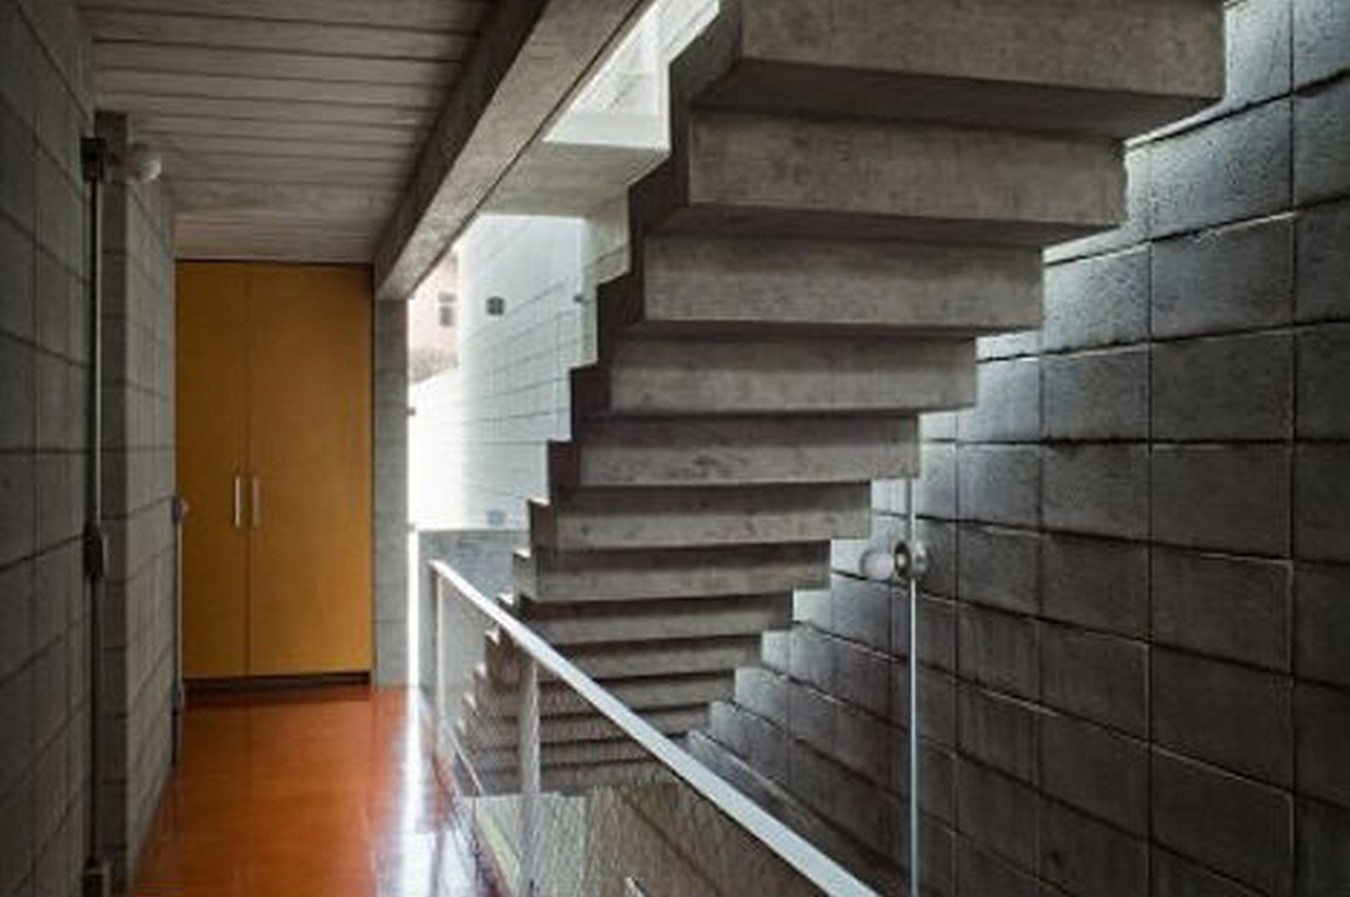 25 Concrete Staircases for Small Houses - sheet14